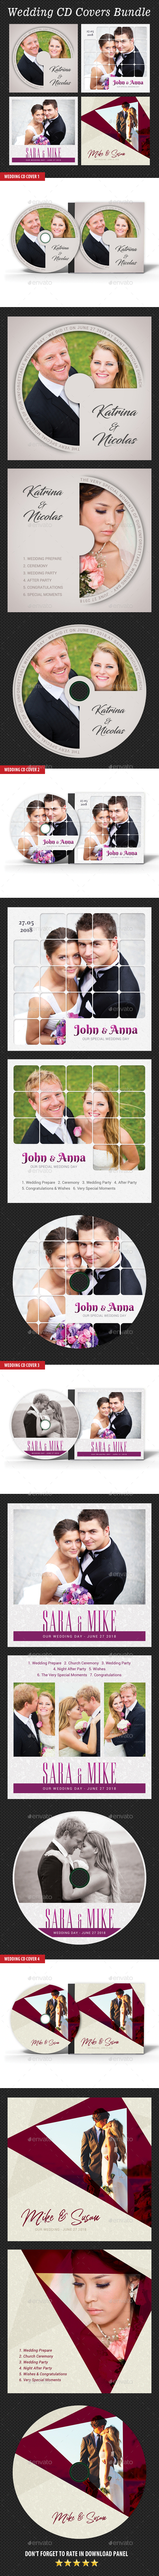 GraphicRiver 4 in 1 Wedding CD Cover Templates Bundle V3 20784156